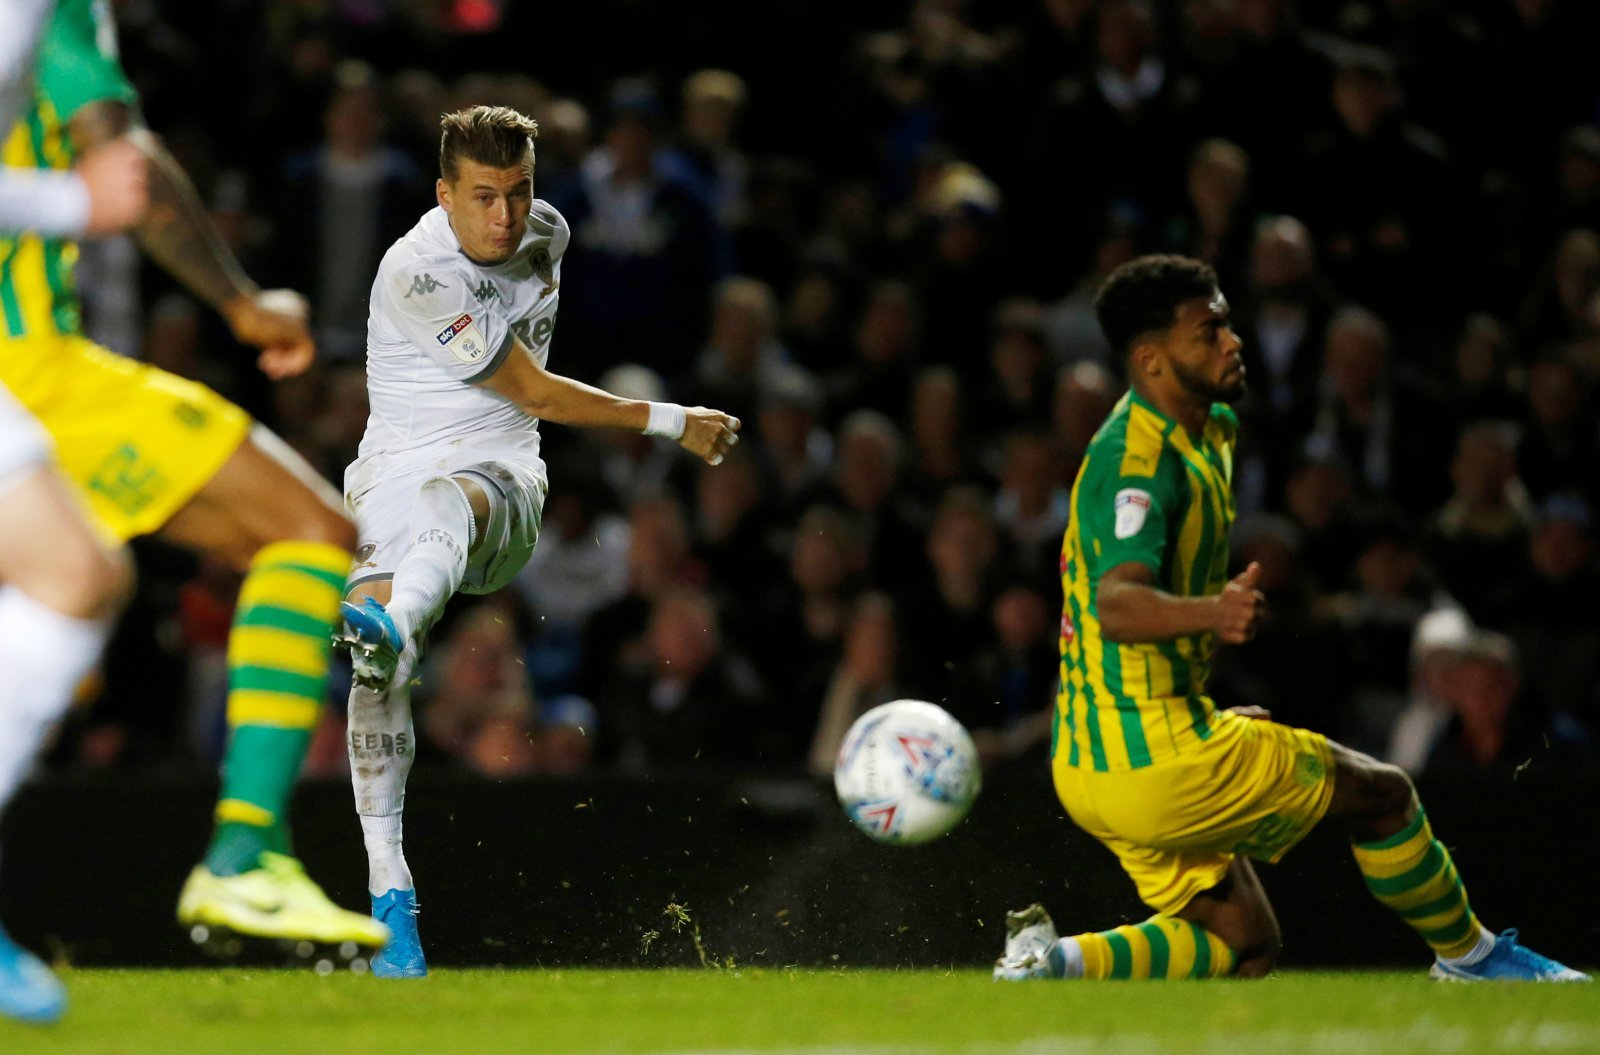 Leeds United: Fans react as EFL mark Ezgjan Alioski's strike against West Bromwich Albion as a Kyle Bartley own goal